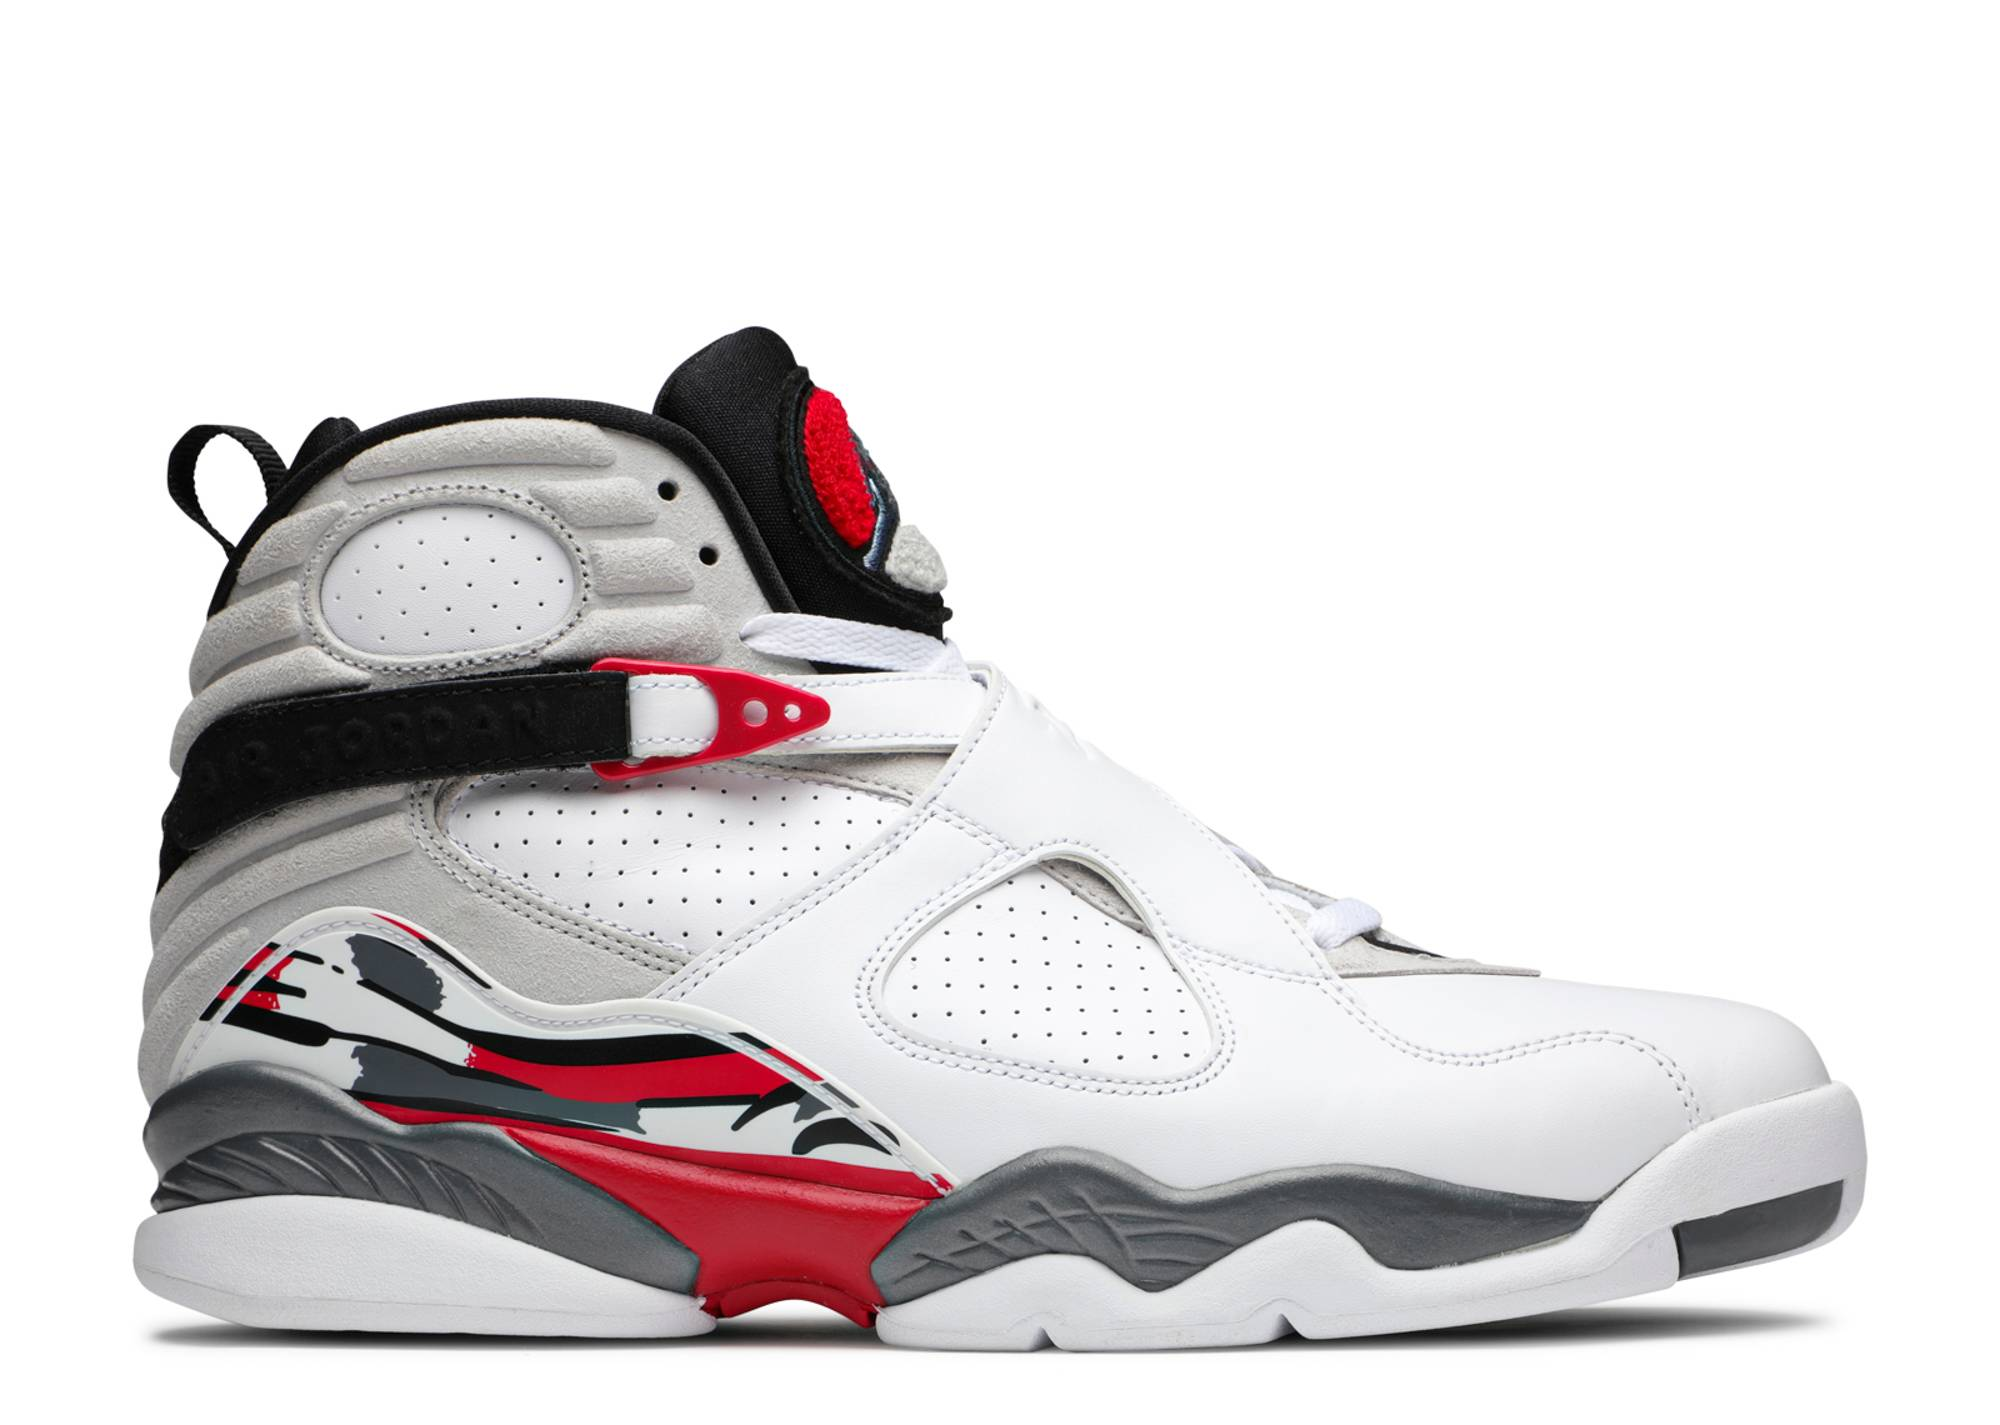 ab370507e2c Air Jordan 8 (VIII) Shoes - Nike | Flight Club